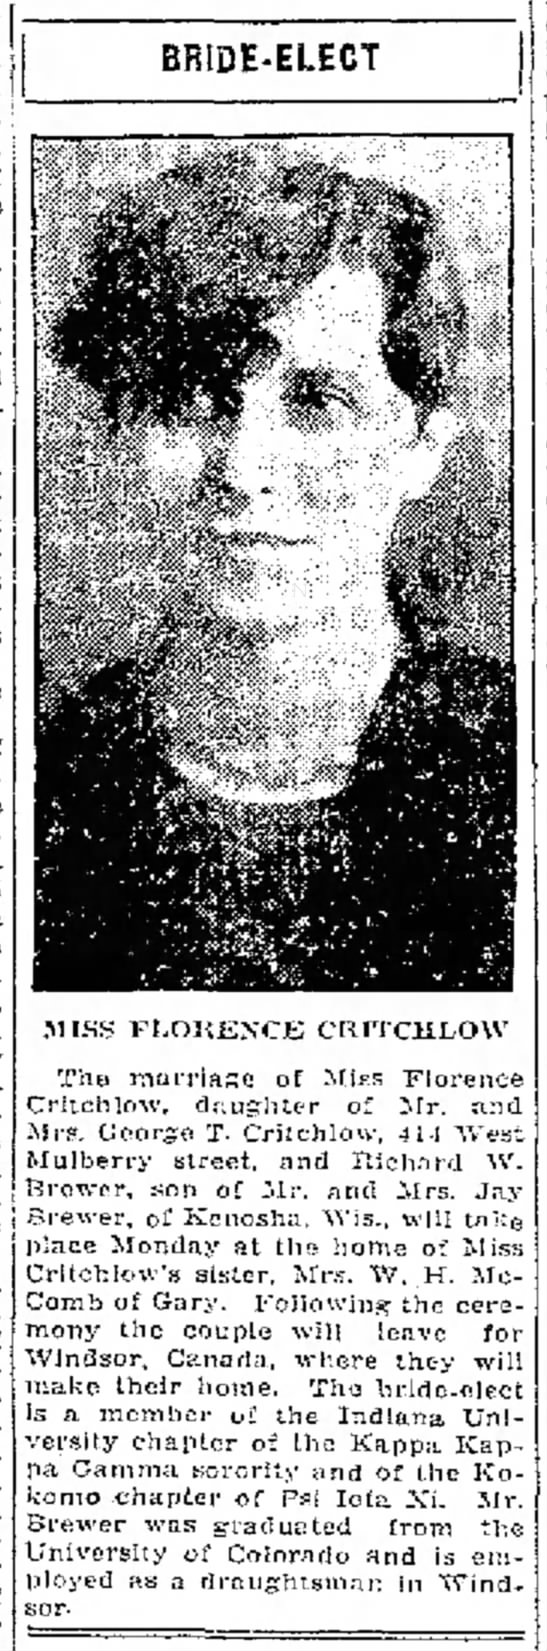 Florence Critchlow & Richard W Brewer Marriage Announcement More Research - j B. | j | j Katharyn I of | interest n o w n ....